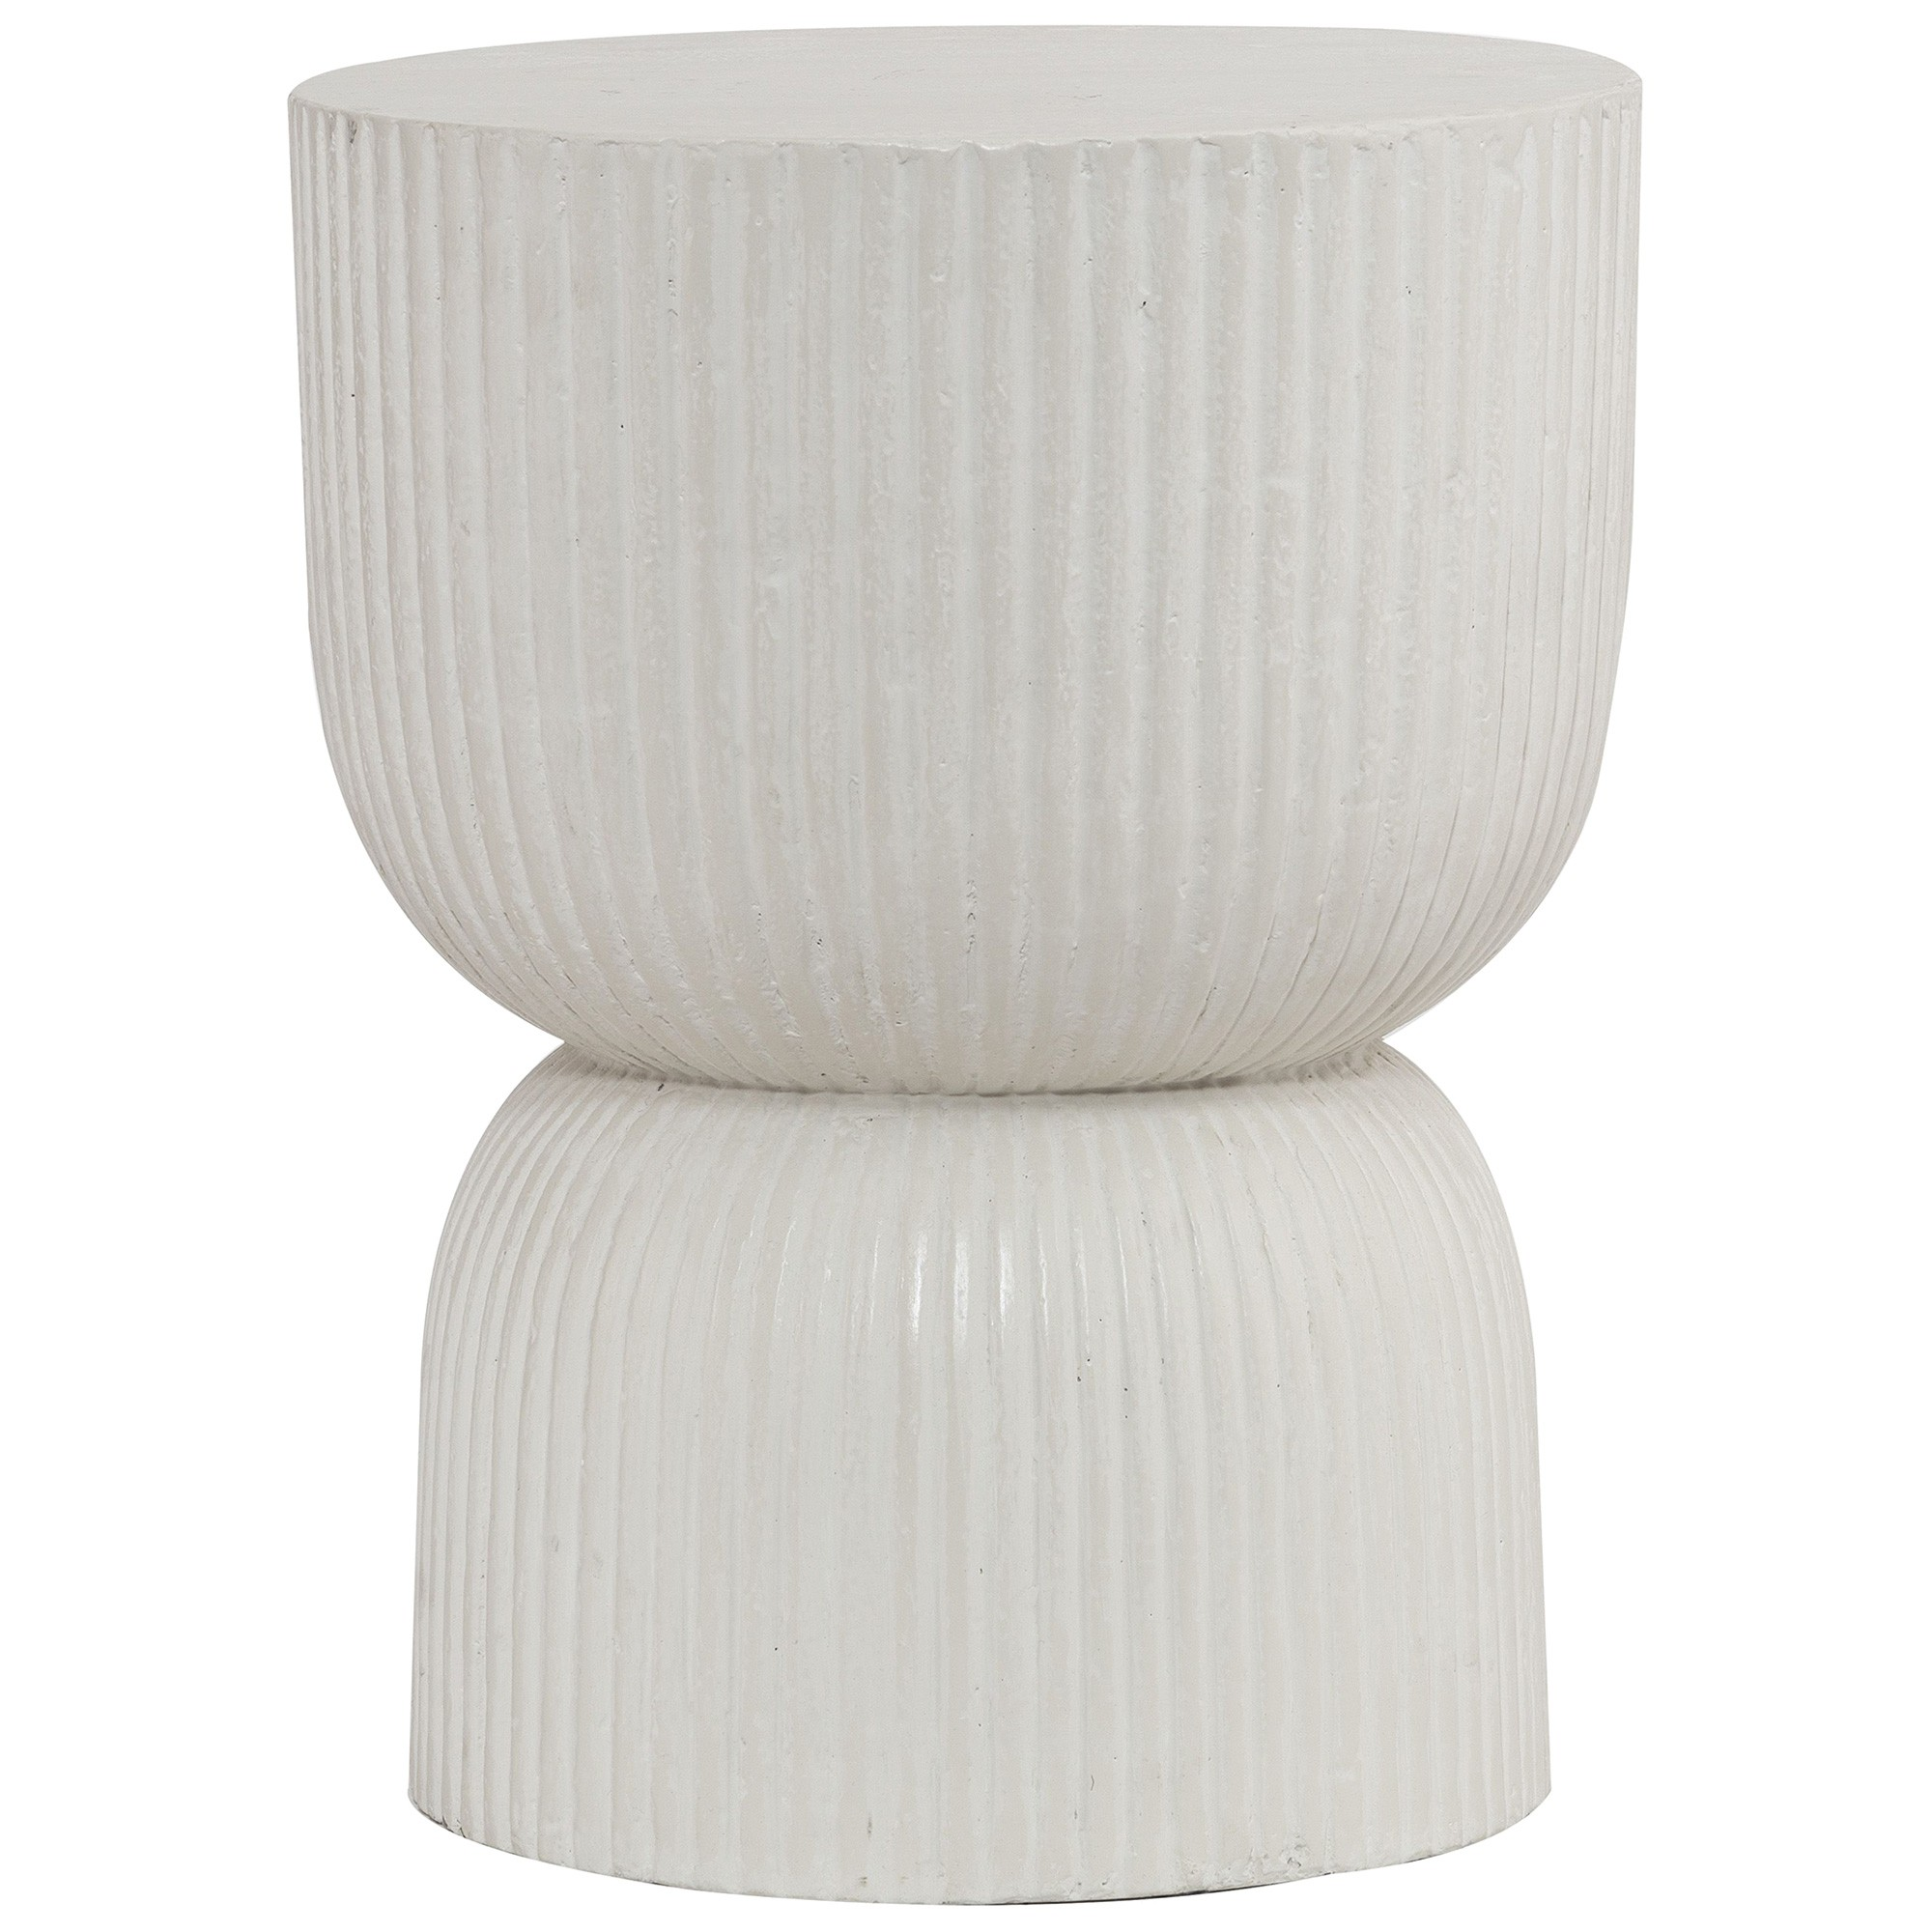 Etta Ceramic Side Table / Stool